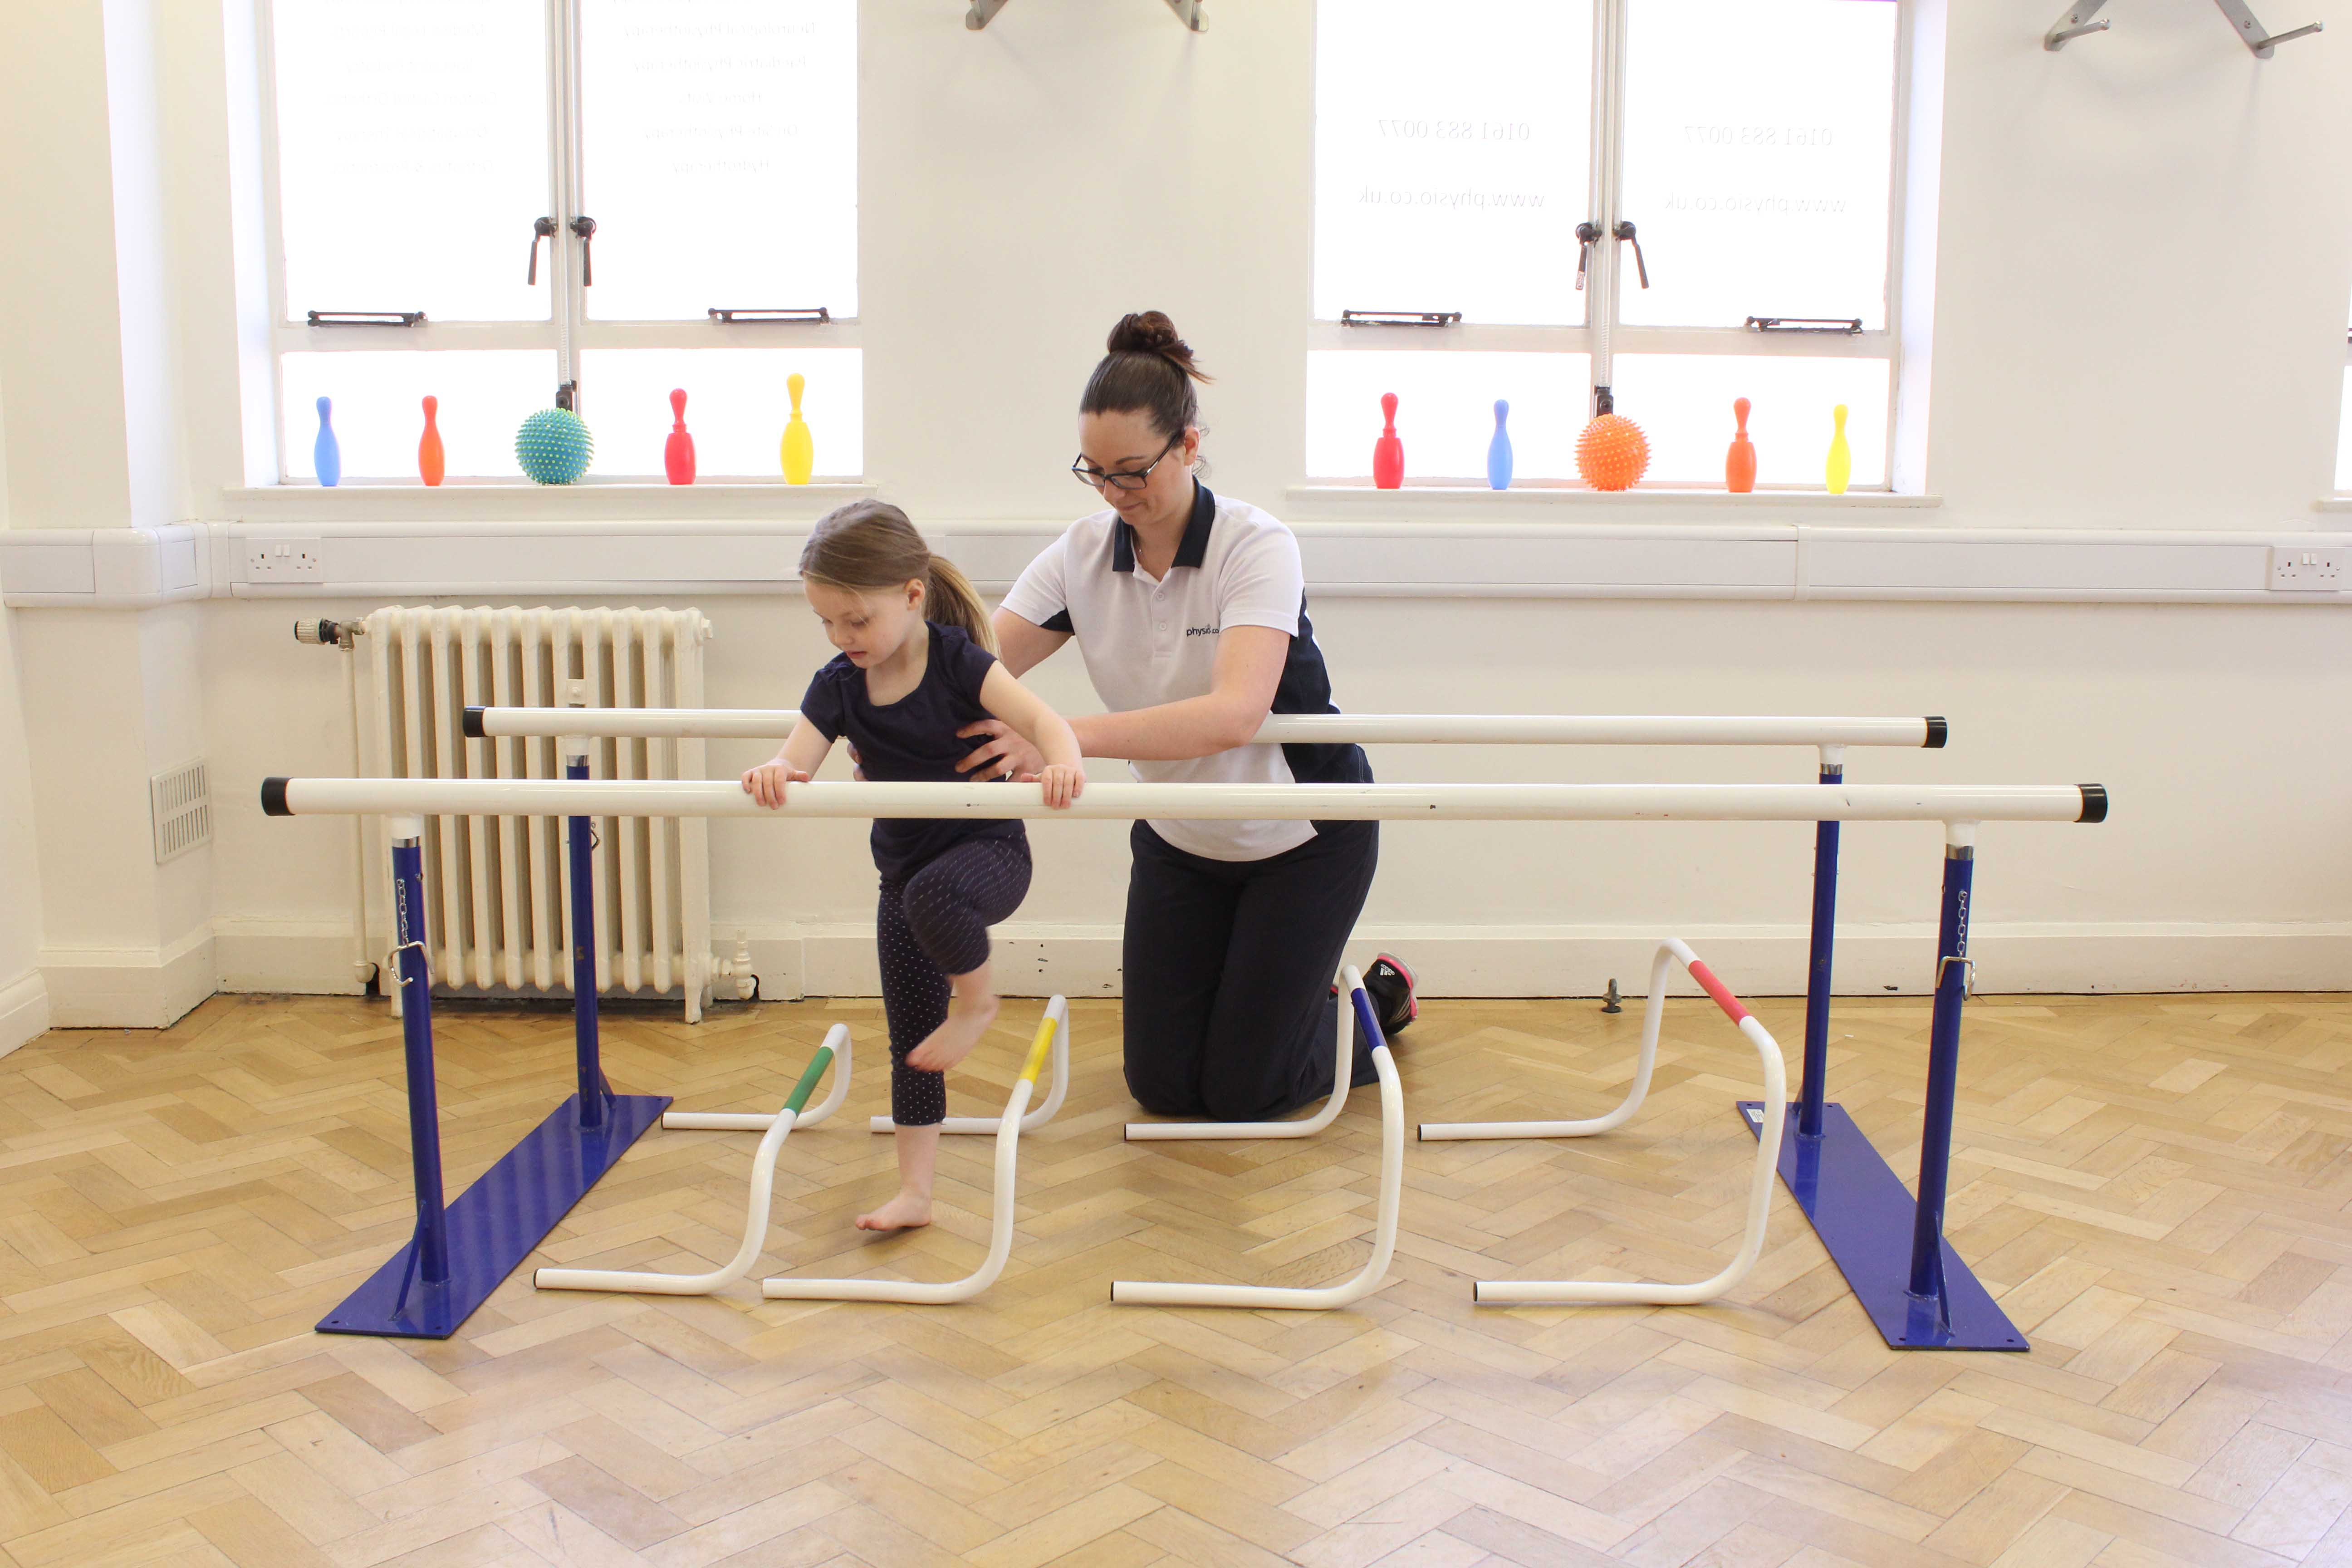 Exaggerated side stepping exercie between parrallel bars with therapist supervision.